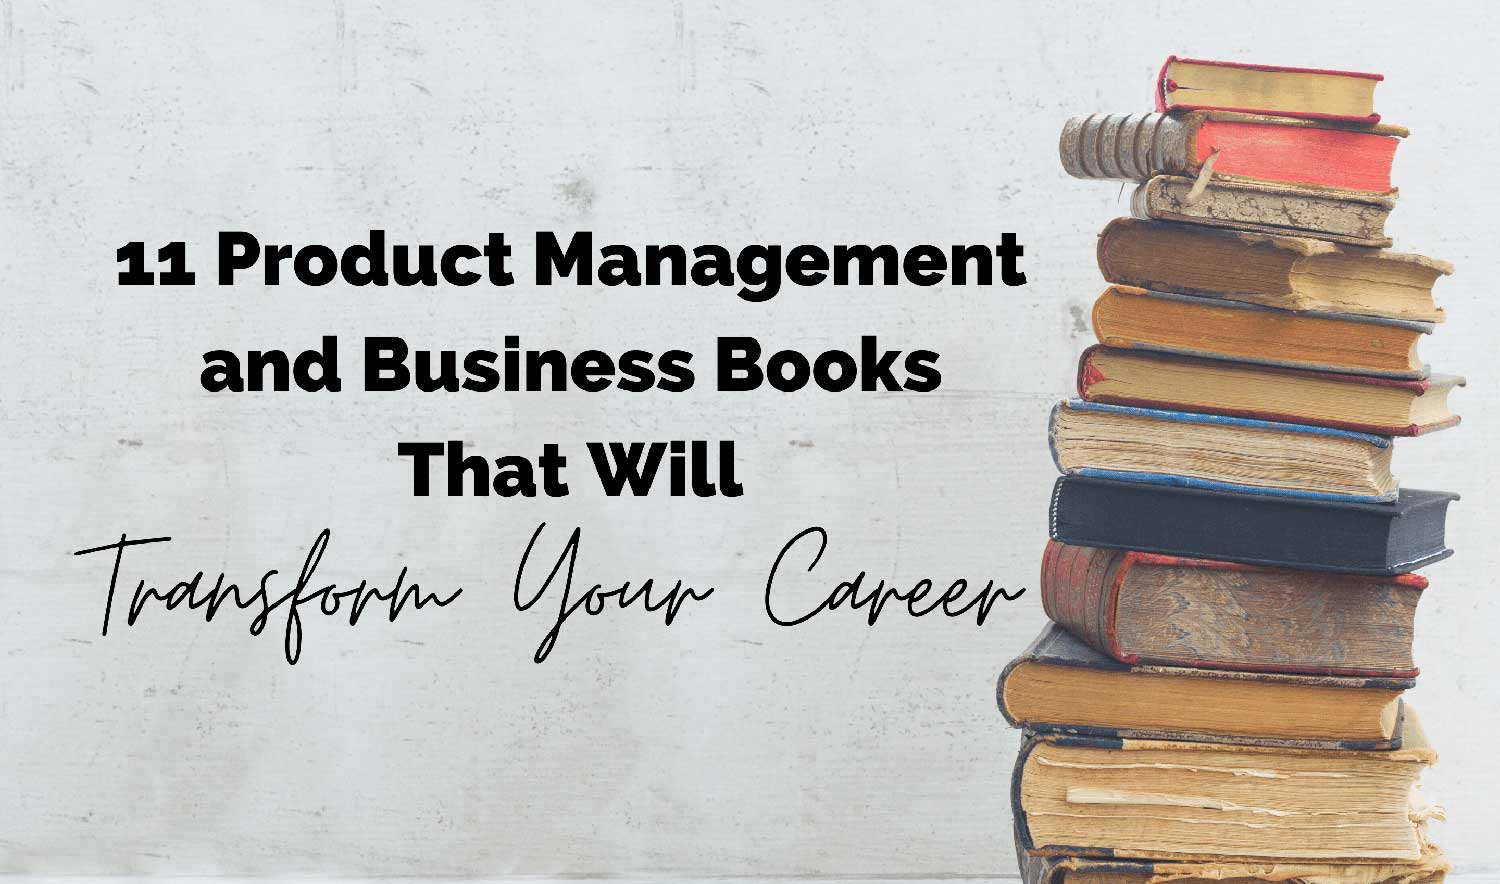 11 Product Management & Business Books That Will Transform Your Career blog cover, books and text overlay